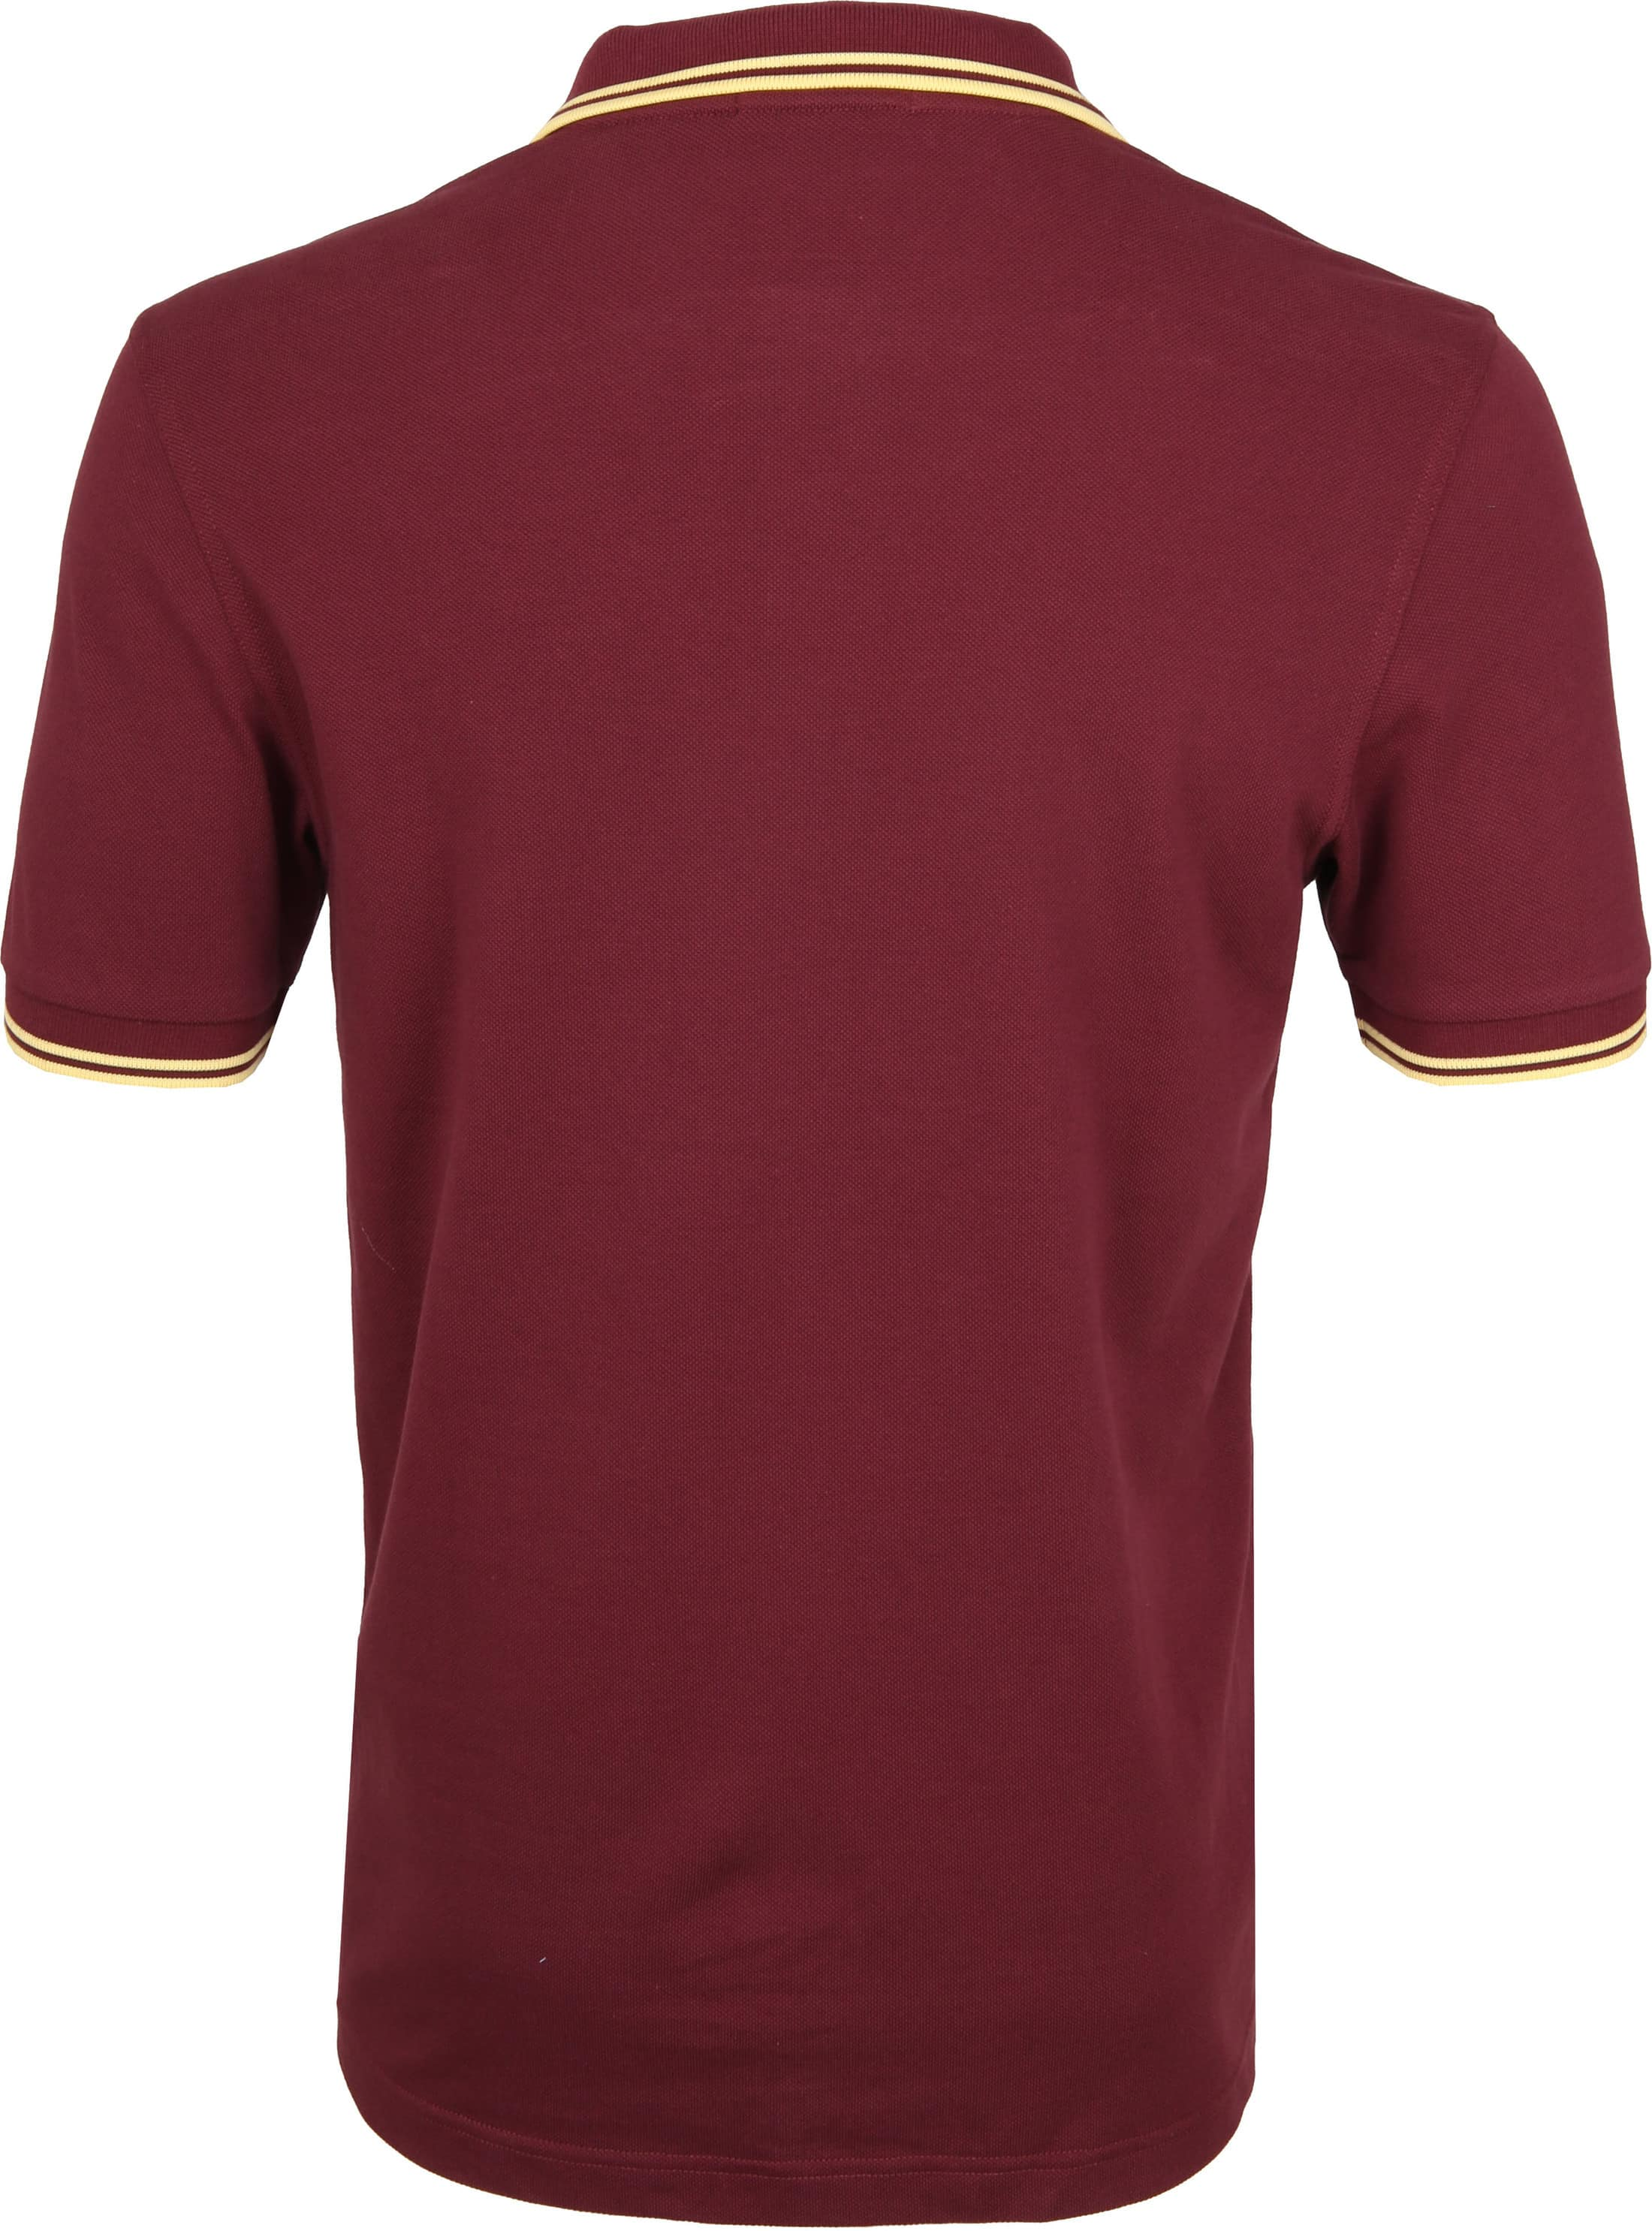 Fred Perry Poloshirt Bordeaux 472 foto 2